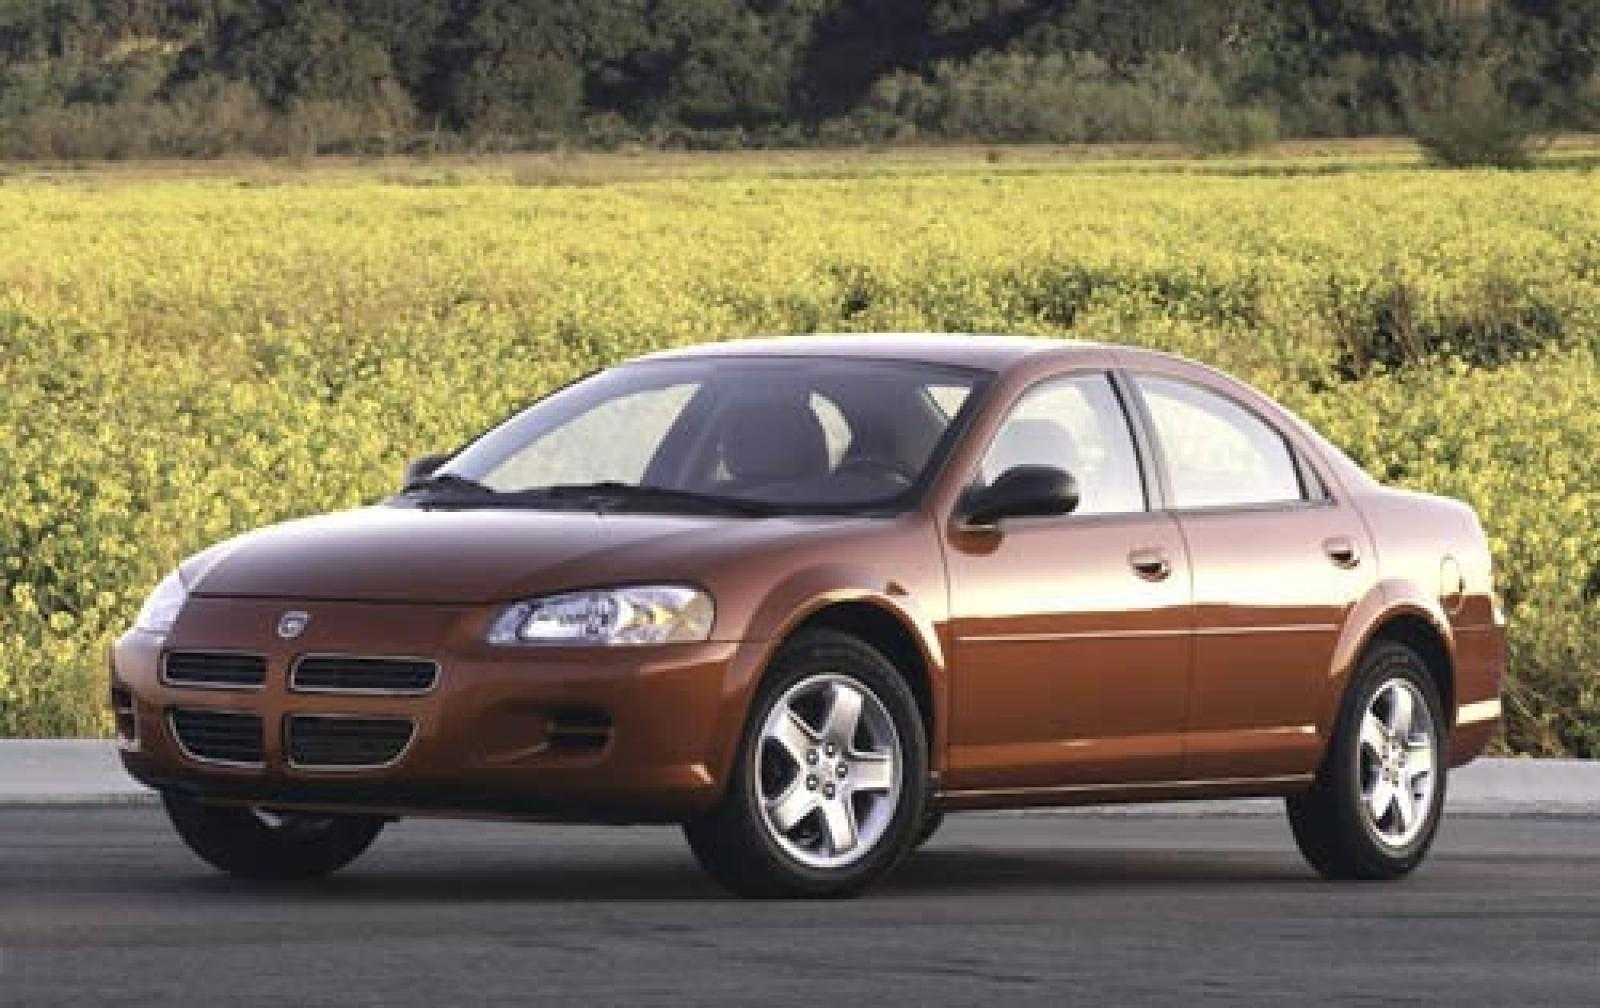 2005 dodge stratus information and photos zombiedrive. Black Bedroom Furniture Sets. Home Design Ideas